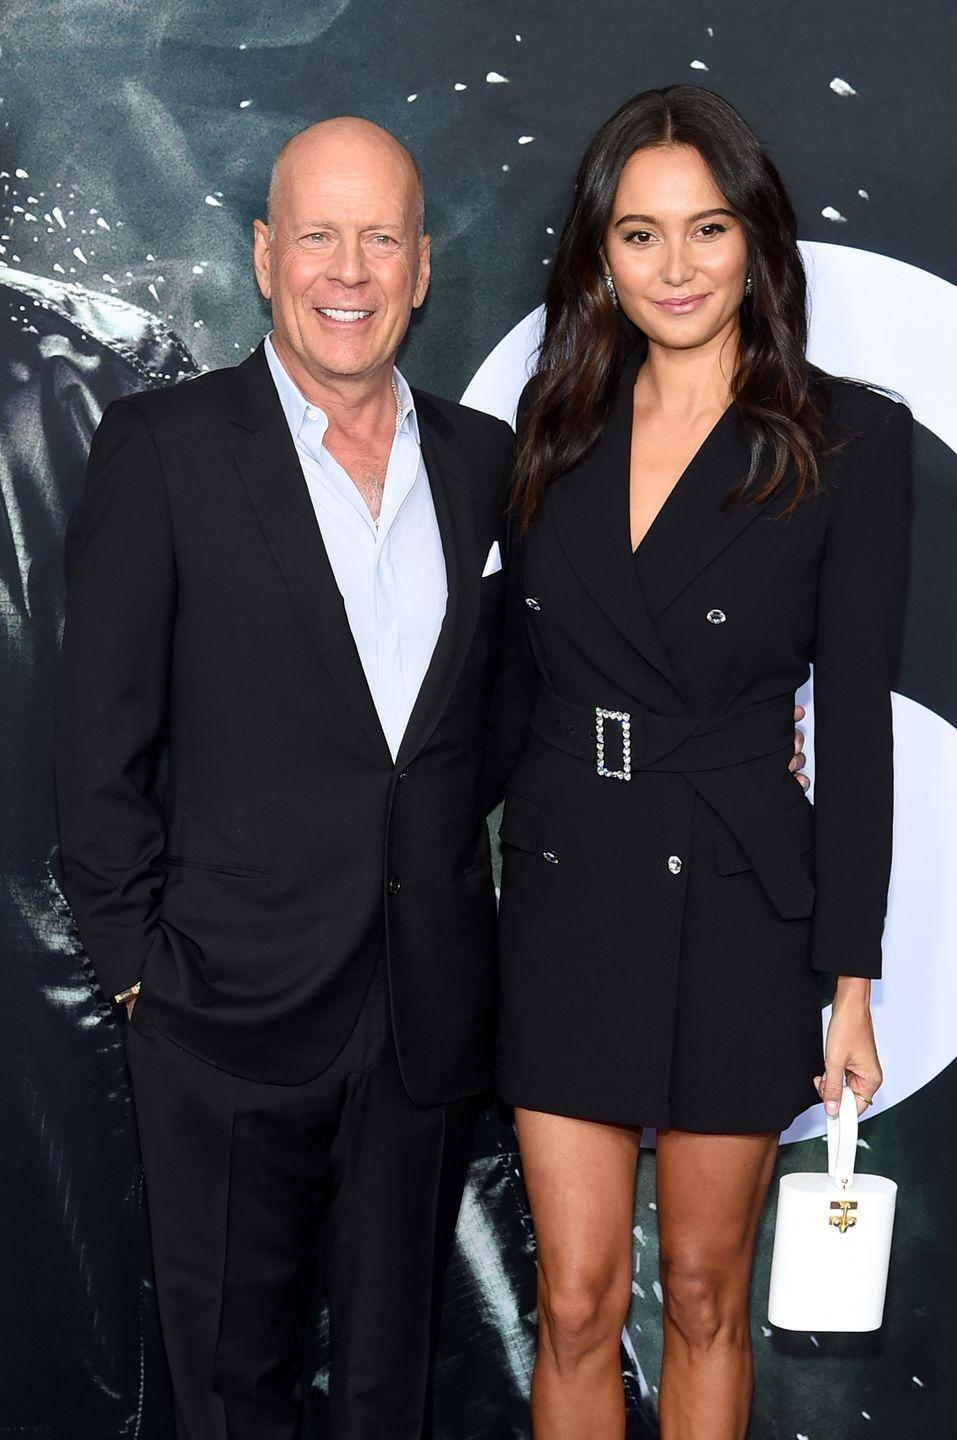 "<p>Married once before (to actress Demi Moore), <em>The Sixth Sense</em> star <a href=""http://www.dailymail.co.uk/tvshowbiz/article-1164038/Bruce-Willis-marries-Demi-double-16-years-younger-Caribbean-ceremony.html"" rel=""nofollow noopener"" target=""_blank"" data-ylk=""slk:married his second"" class=""link rapid-noclick-resp"">married his second</a>, Emma Heming Willis, in 2009. The couple now have two daughters together.</p>"